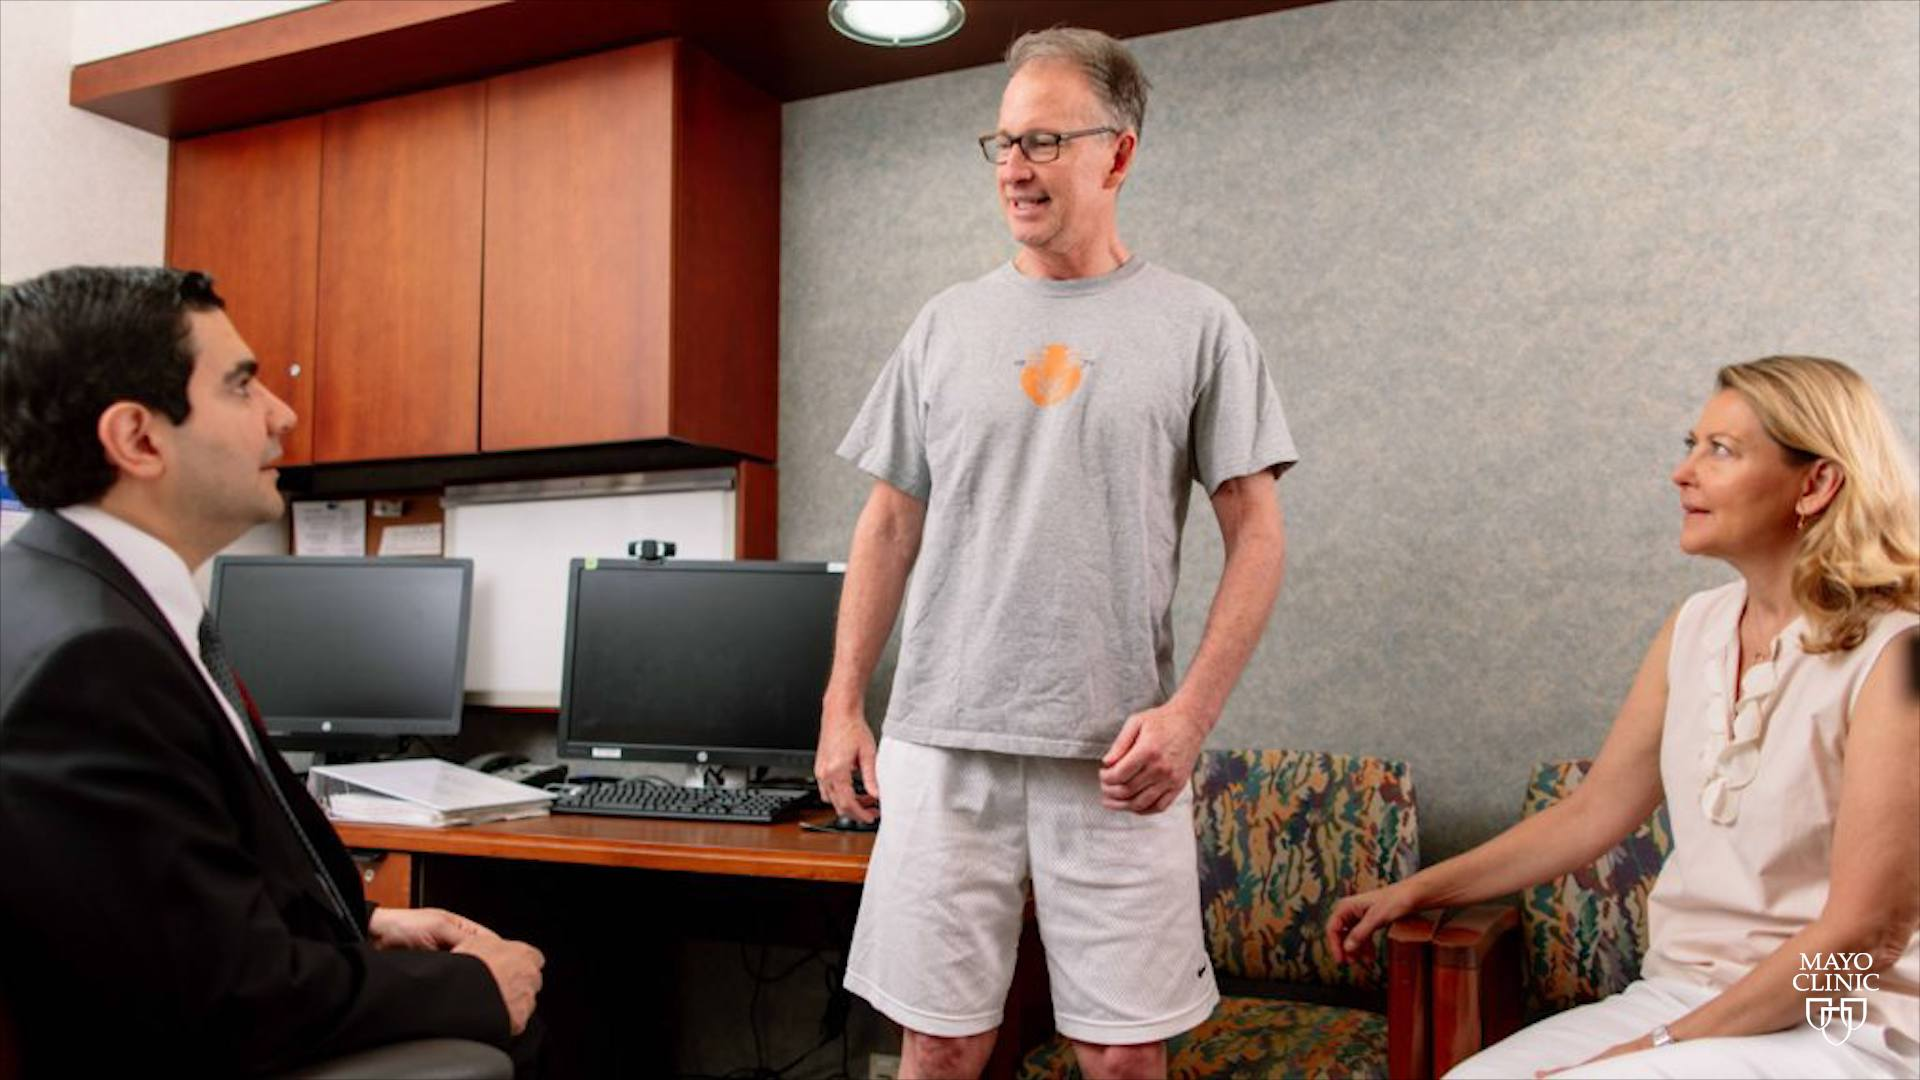 stem cell trial patient Chris Barr in shorts and a t-shirt, smiling and standing a clinic exam room with Dr. Mohamad Bydon and wife Debbie Barr looking on